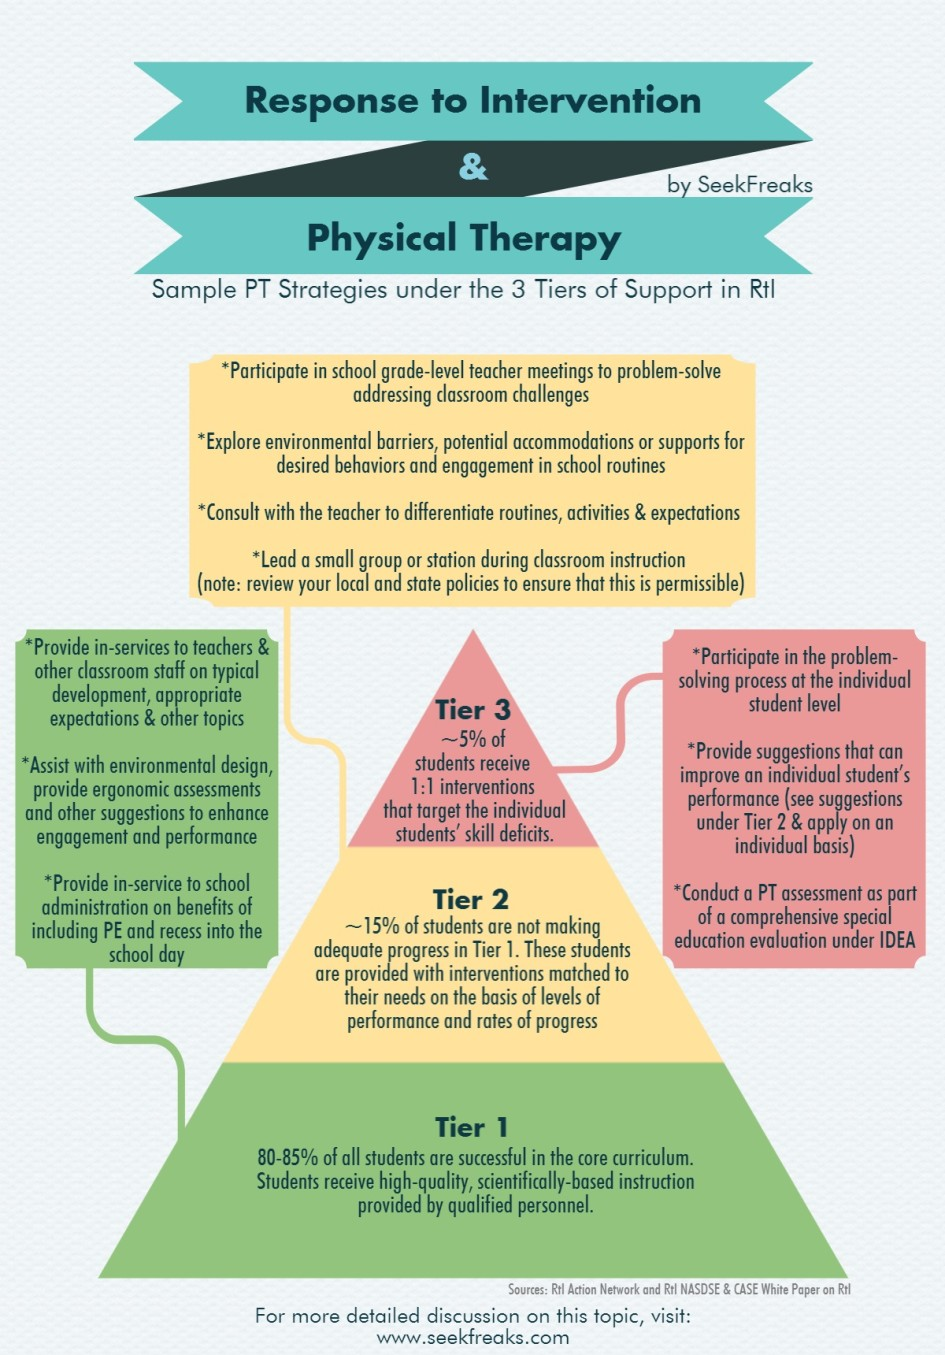 Response To Intervention And Physical Therapy 1 Seekfreaks